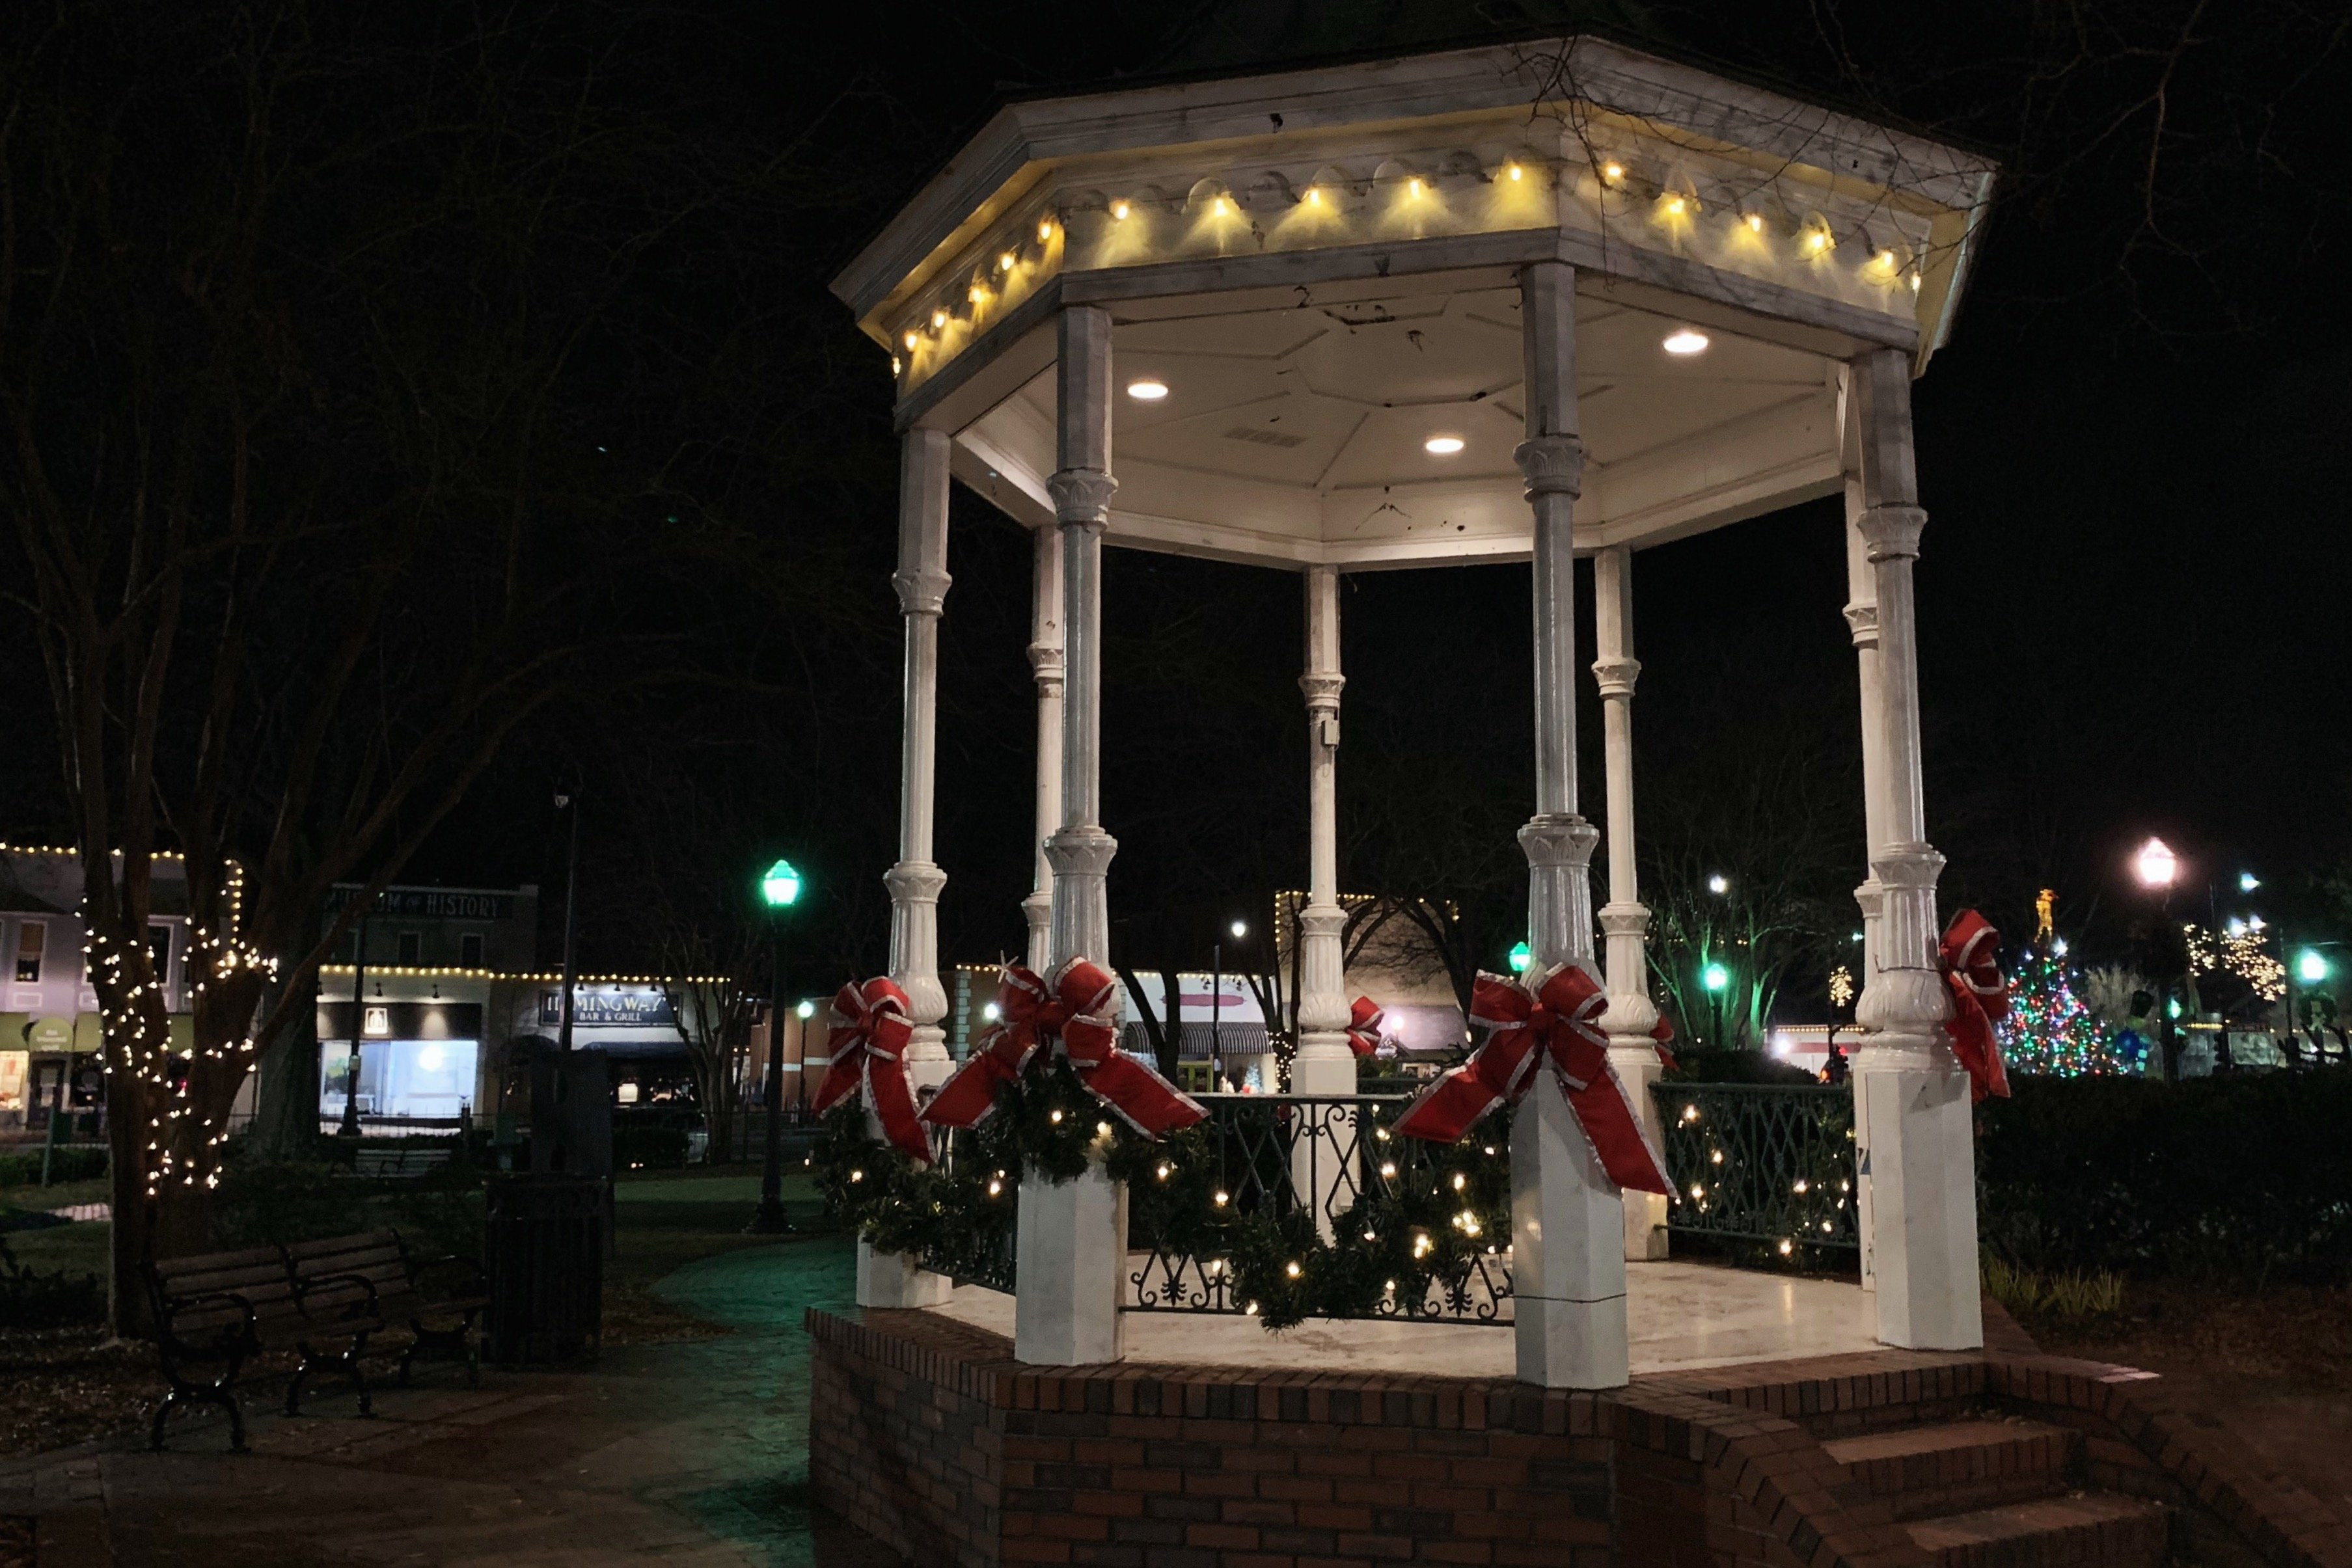 pavilion on marietta square decked out in holiday garland and lights